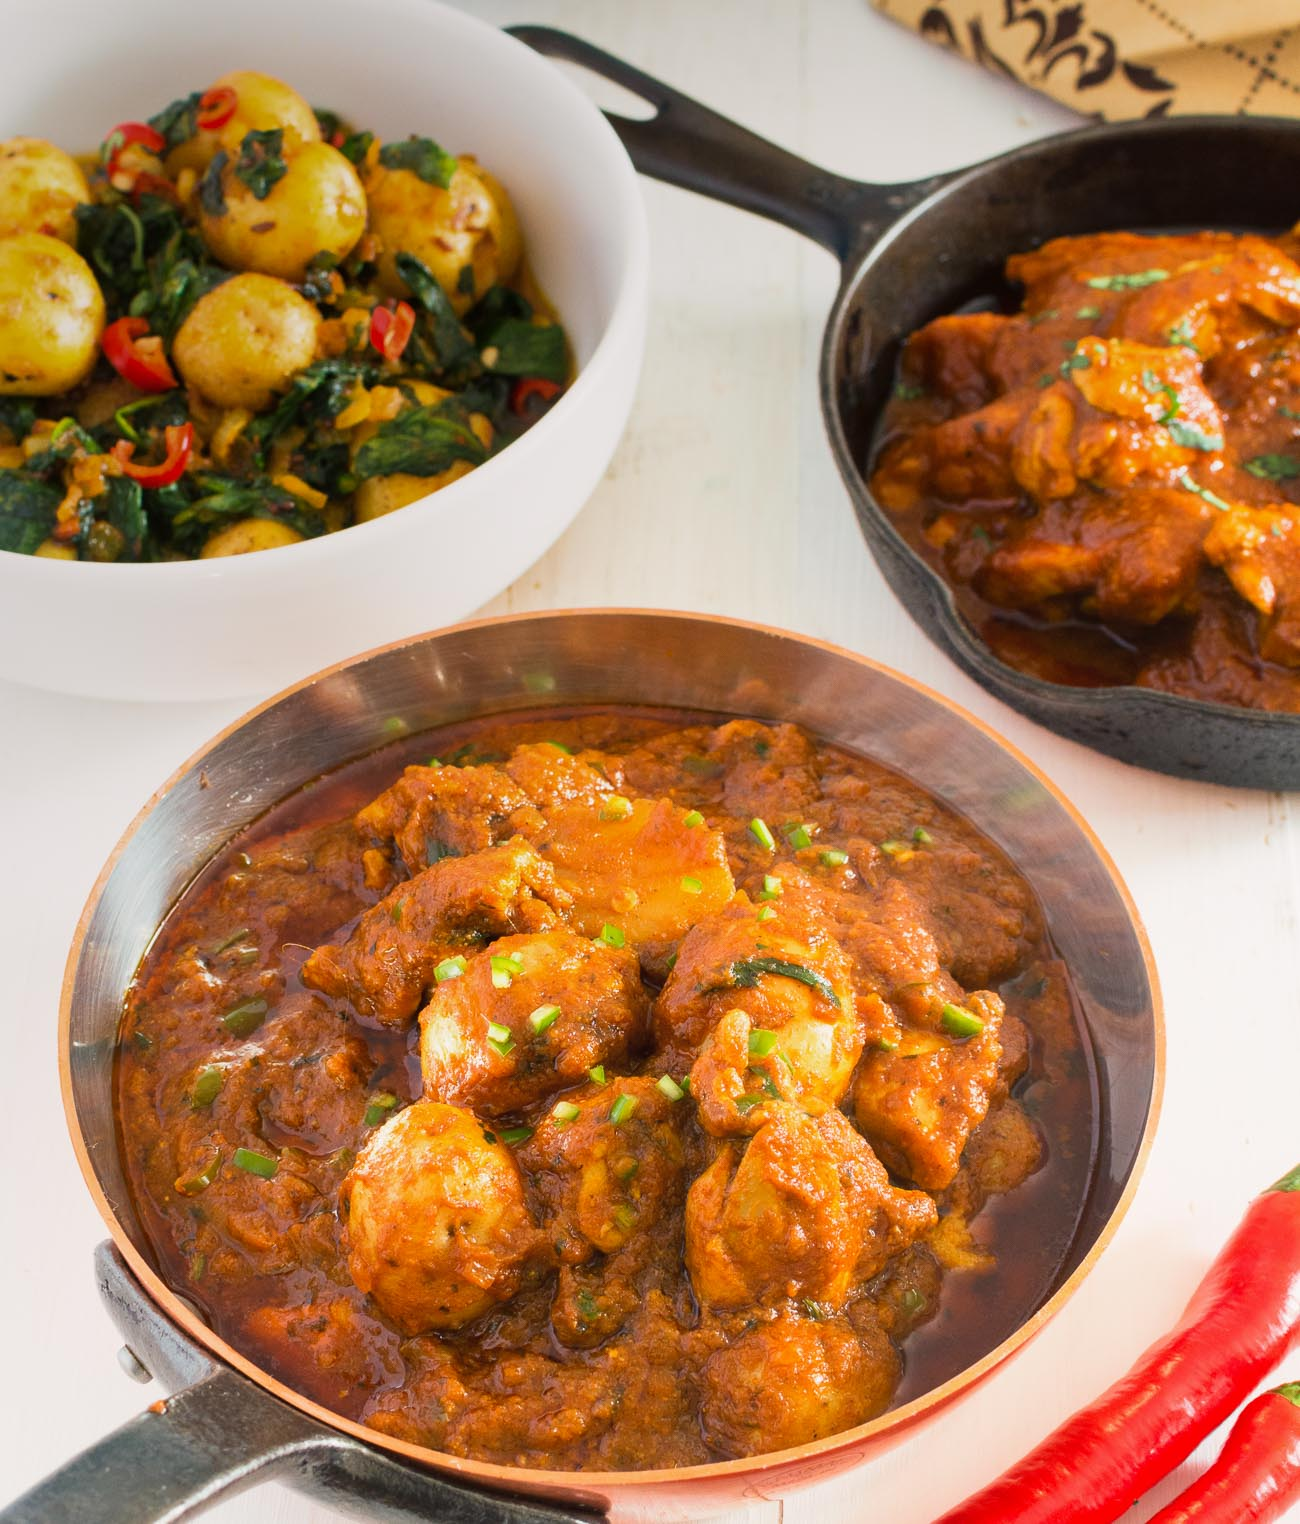 Restaurant style aloo chat chicken is a salty sour medium spicy potato and chicken curry.